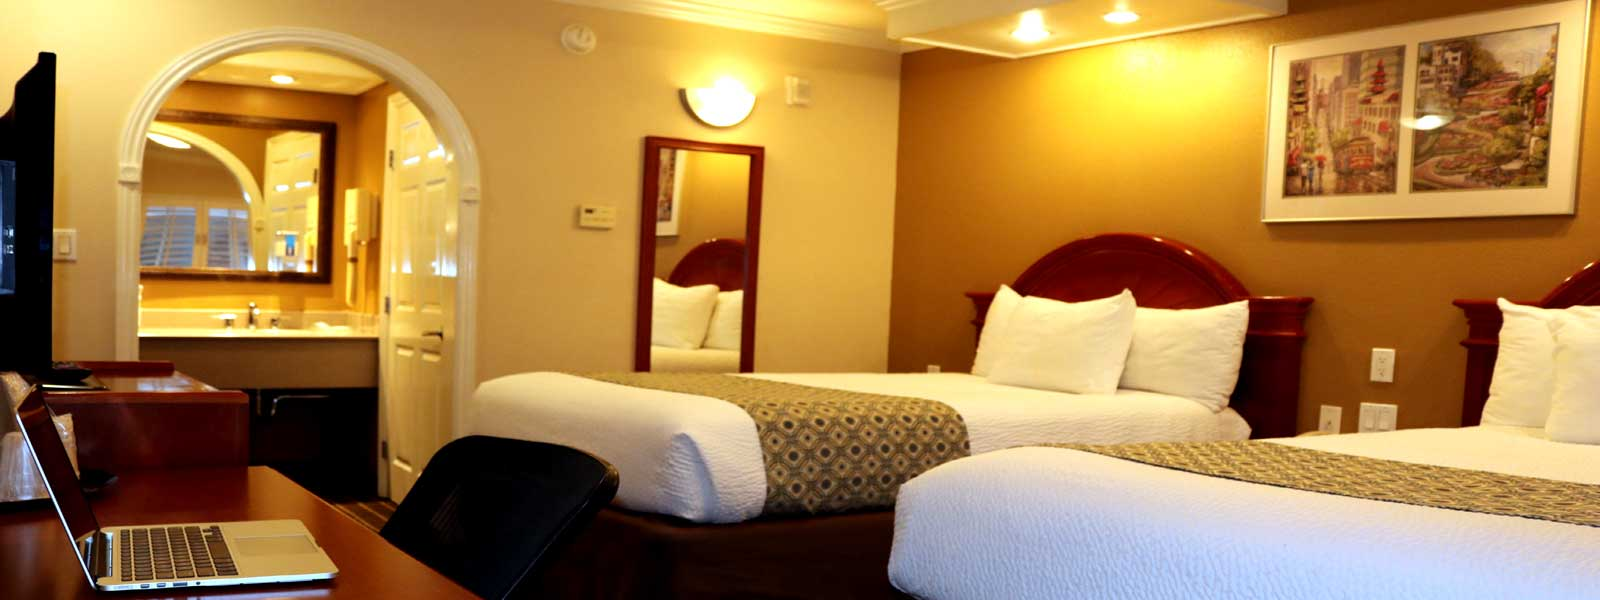 Motels in San Francisco Budget Discount 3 Star Rating